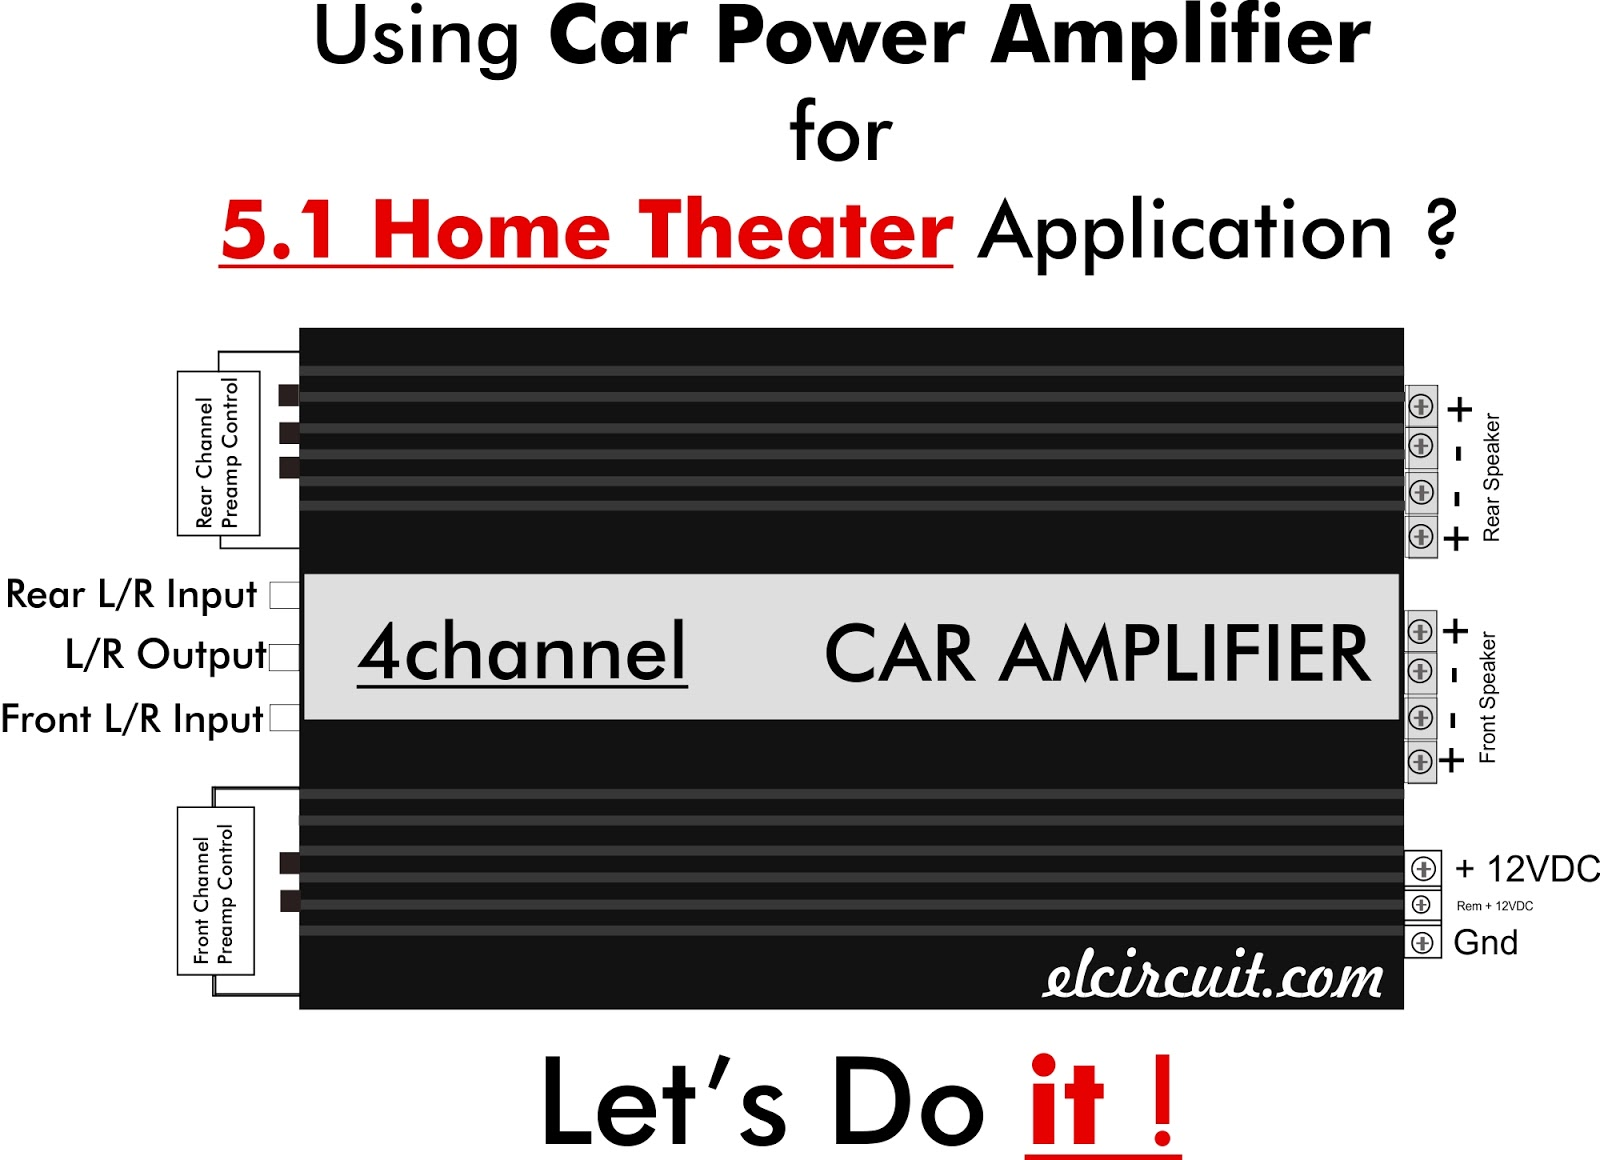 hight resolution of 5 1 home theater using car power amplifier